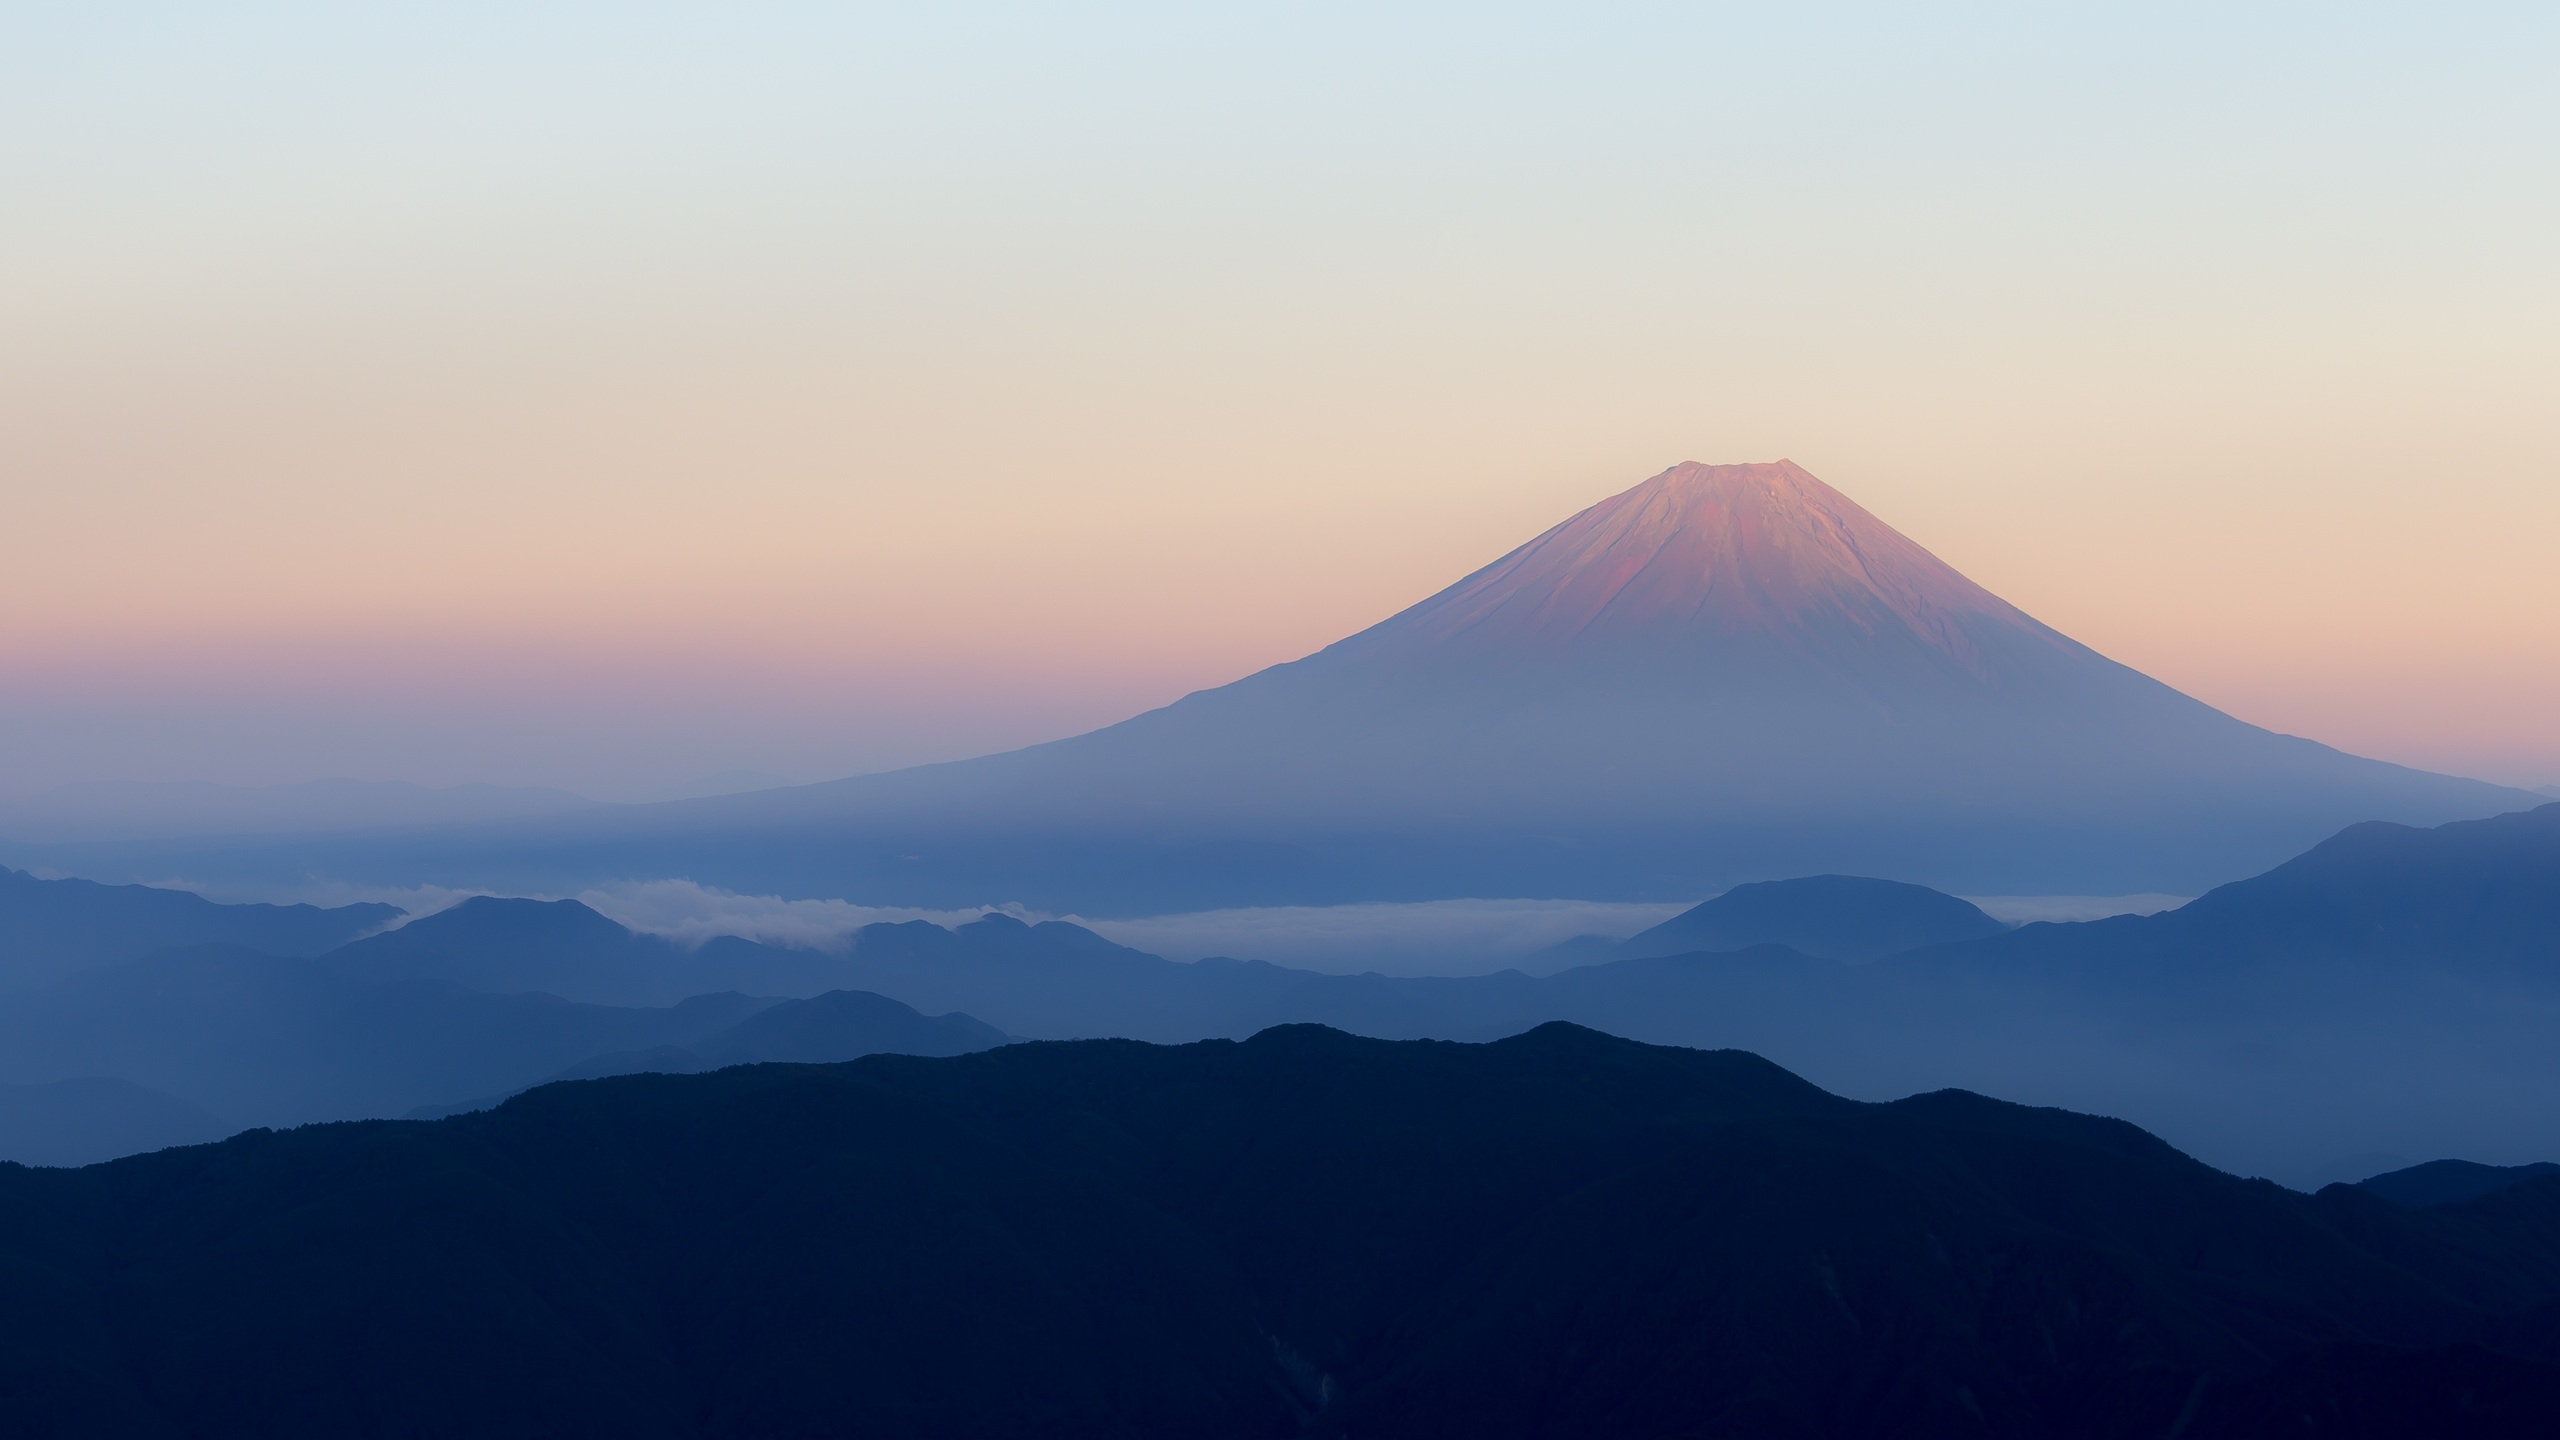 2560x1440 Mt Fuji 4k 1440p Resolution Hd 4k Wallpapers